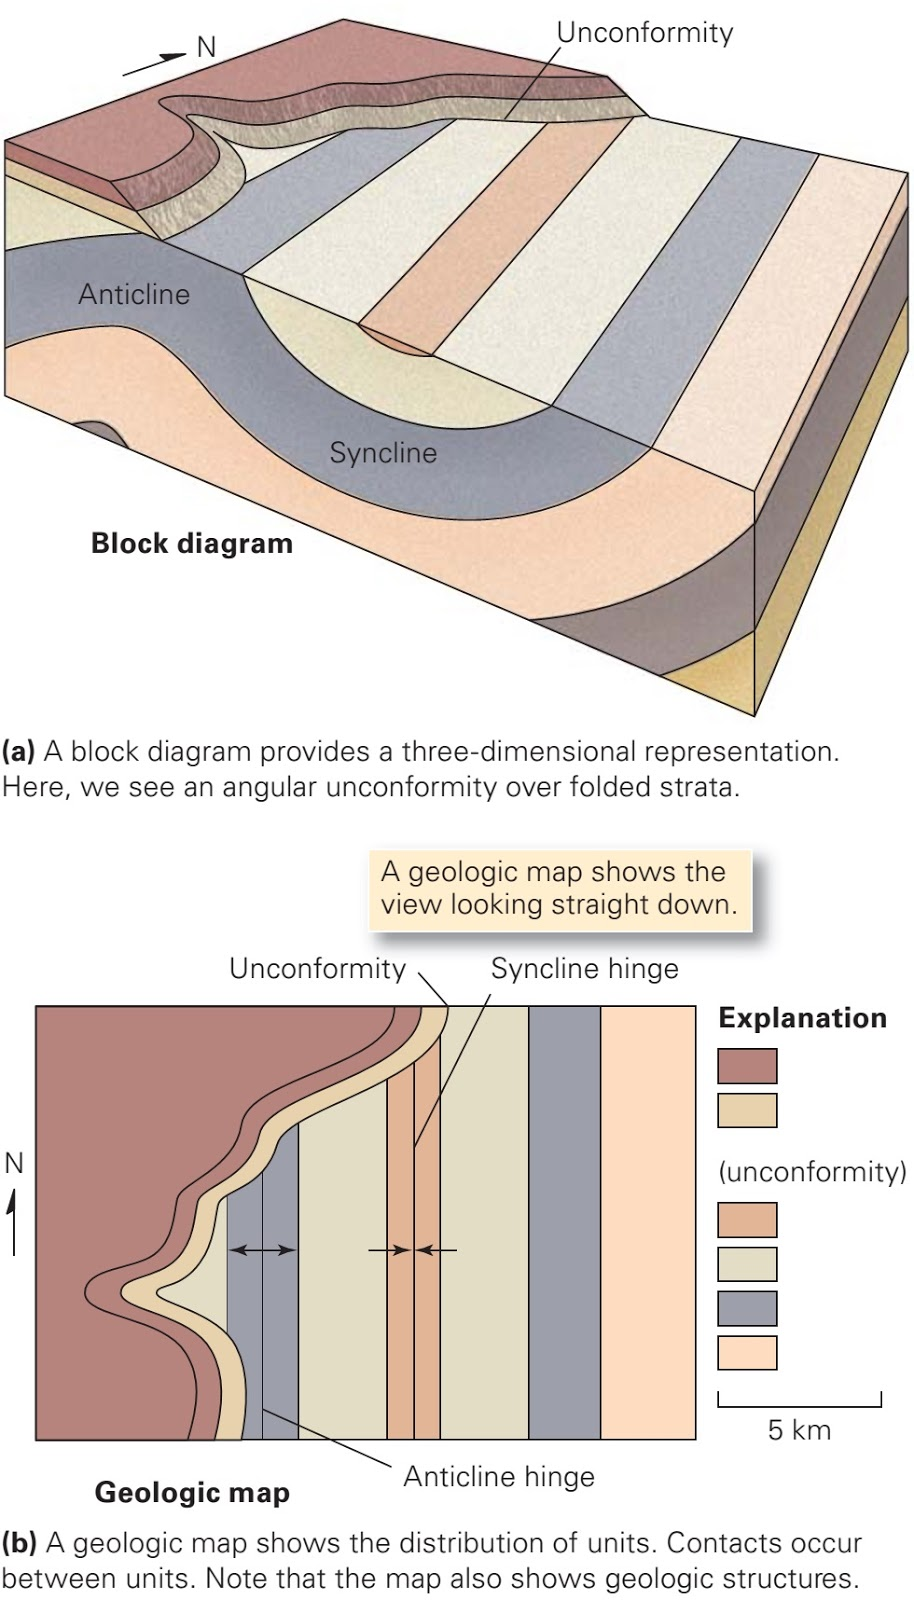 Stratigraphic Formations And Their Correlation Learning Geology Geologic Block Diagram Youngest To Oldest A Map Depicts The Distribution Of Rock Units Structures